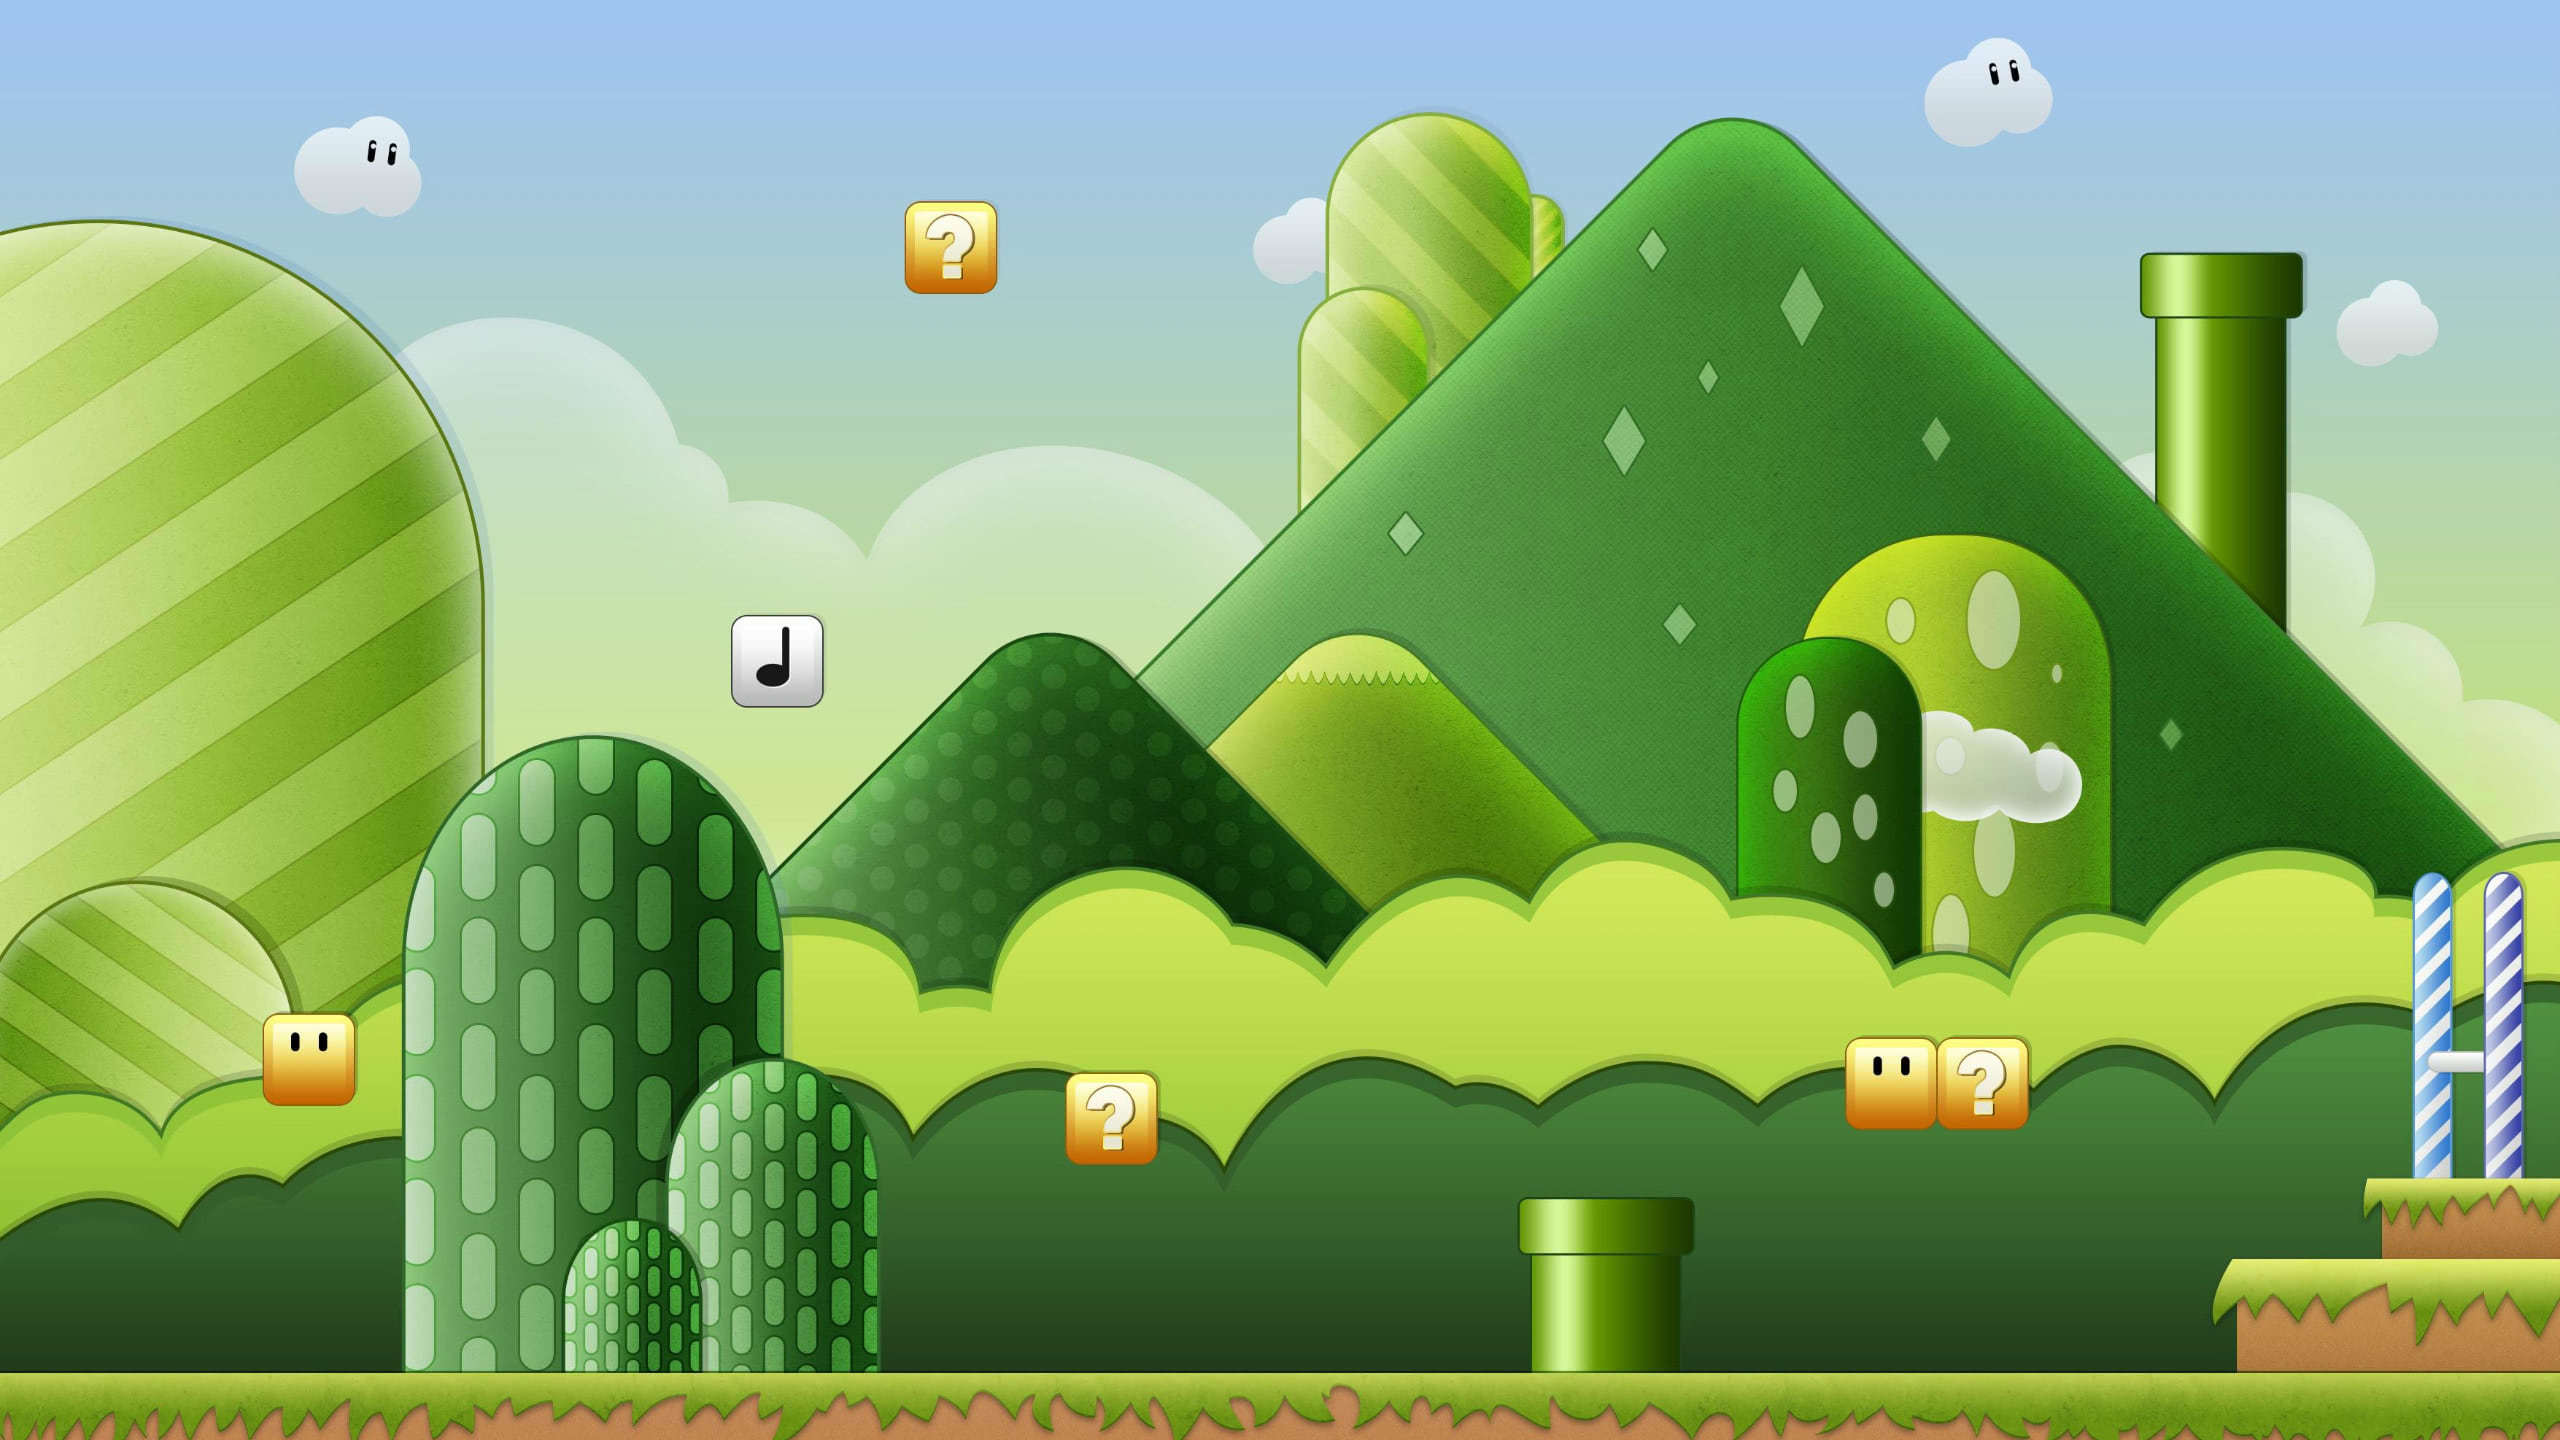 Super Mario Bros Background WQHD 1440P Wallpaper Pixelz 2560x1440